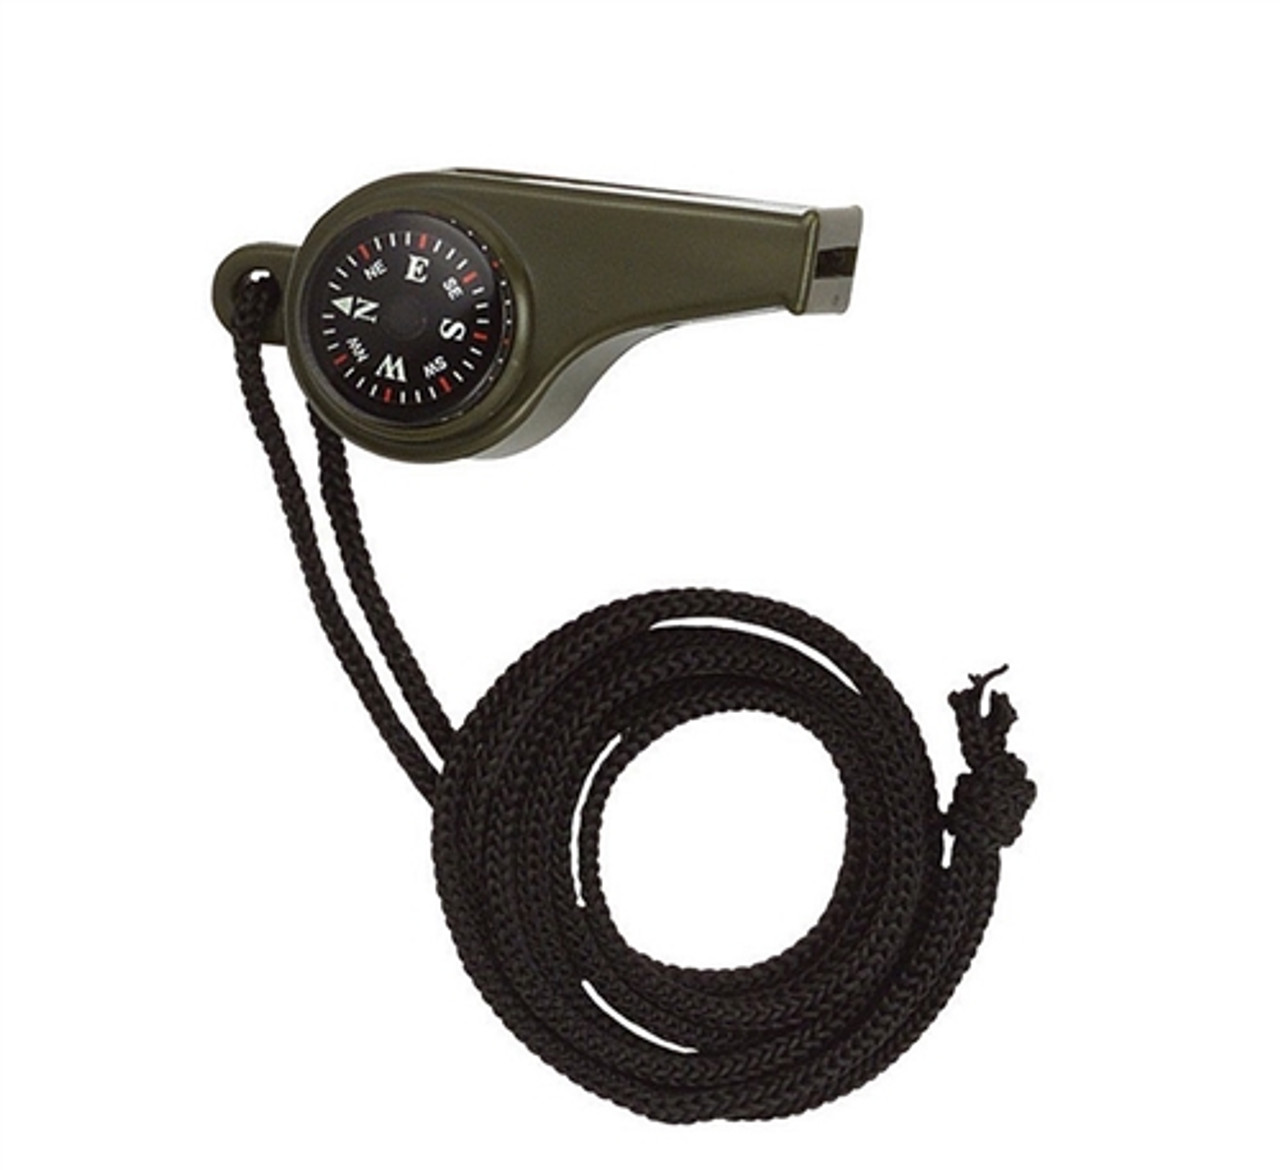 Super Whistle with Compass & Thermometer from Hessen Tactical